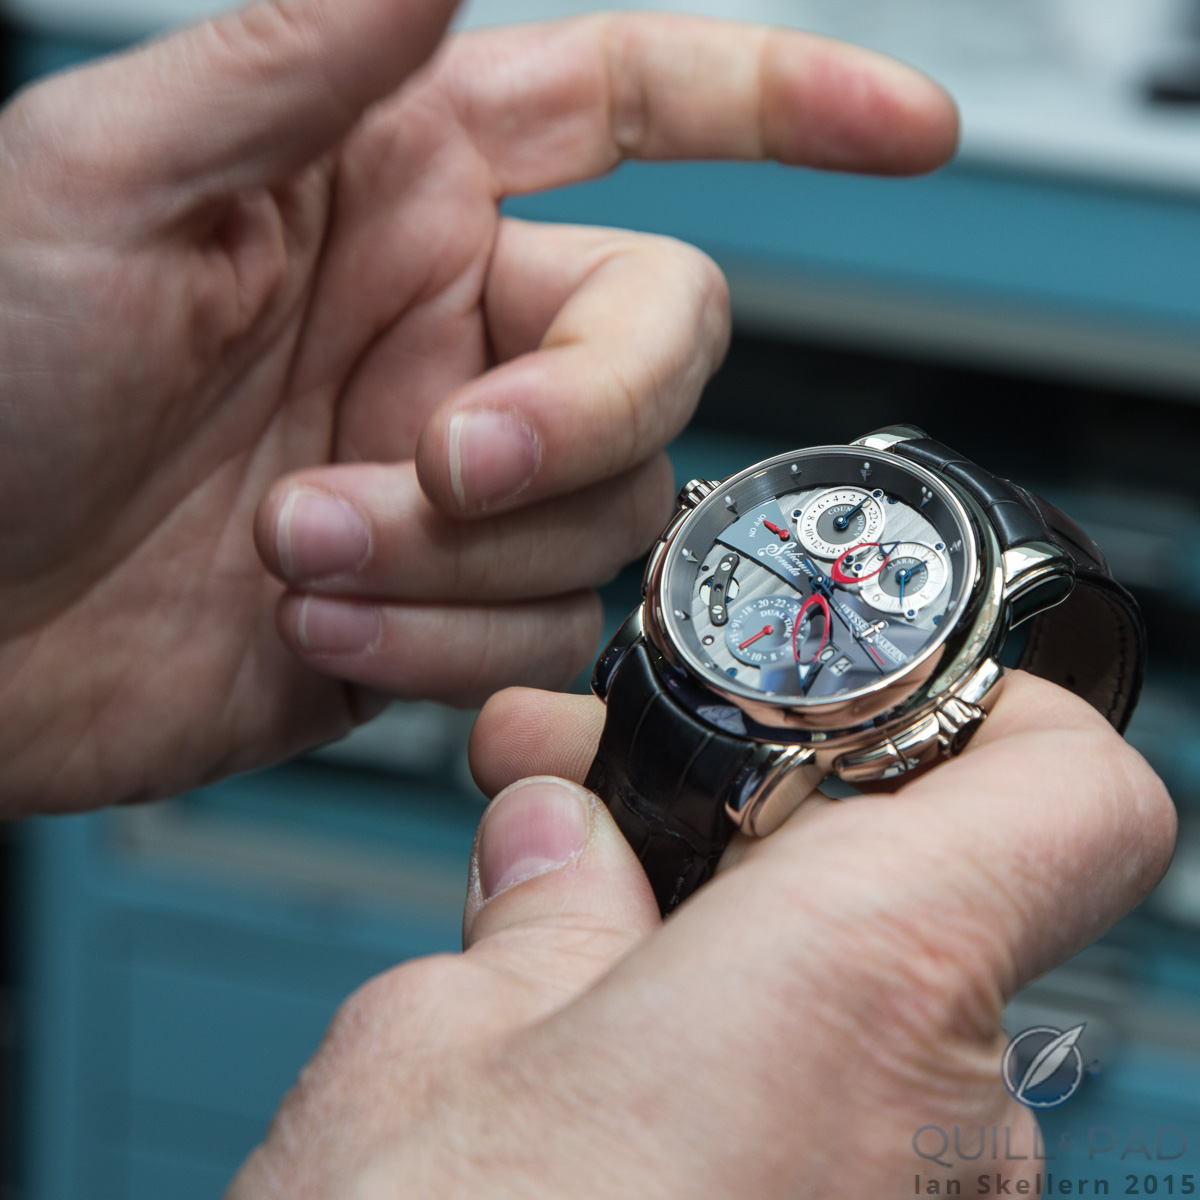 Mo Coppoletta explaining what makes this Ulysse Nardin Sonata so special to him